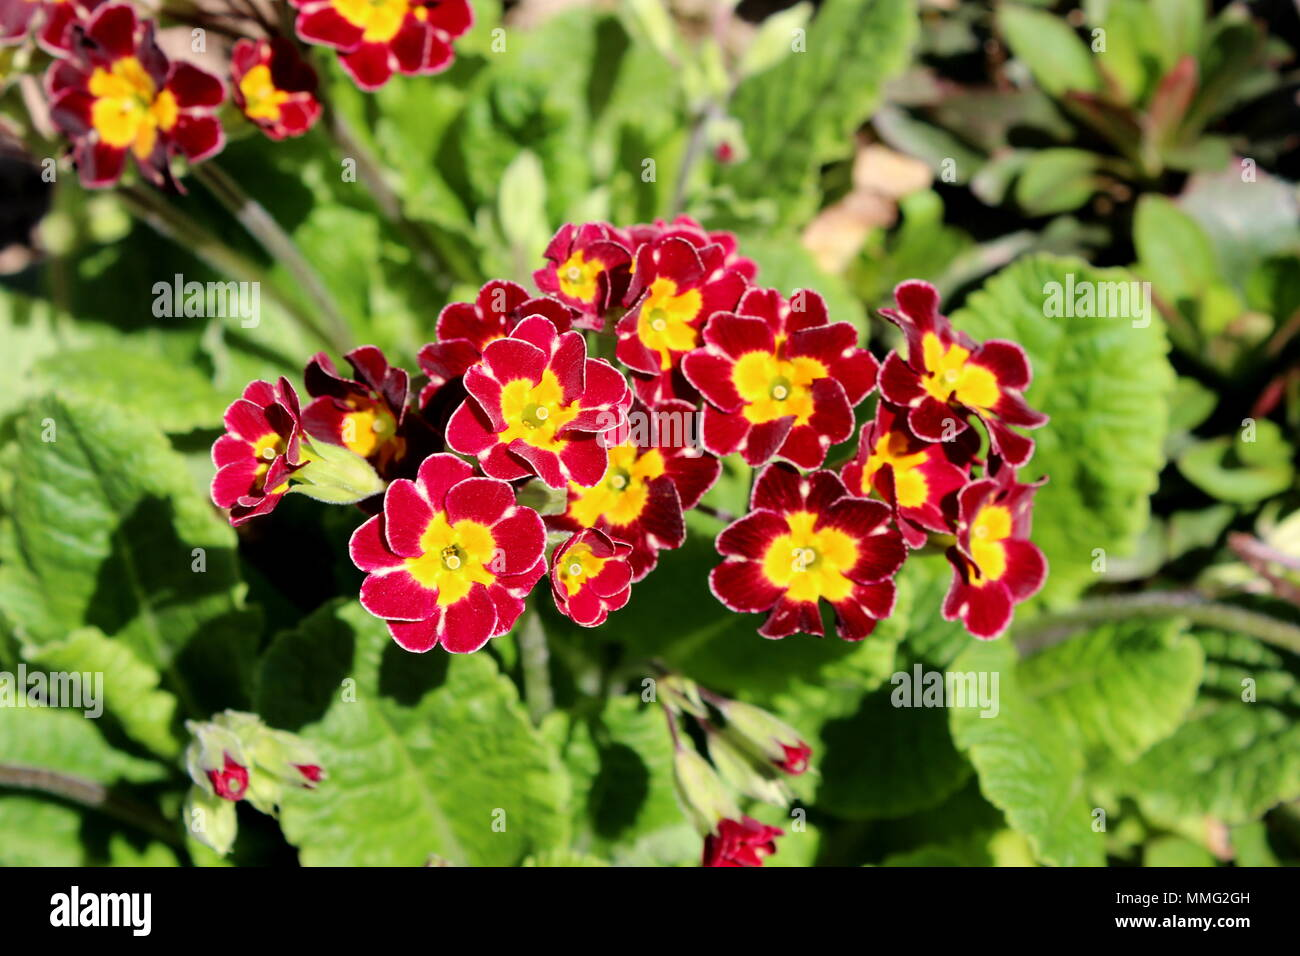 Primrose Or Primula Dark Red And Bright Yellow Spring Flowers